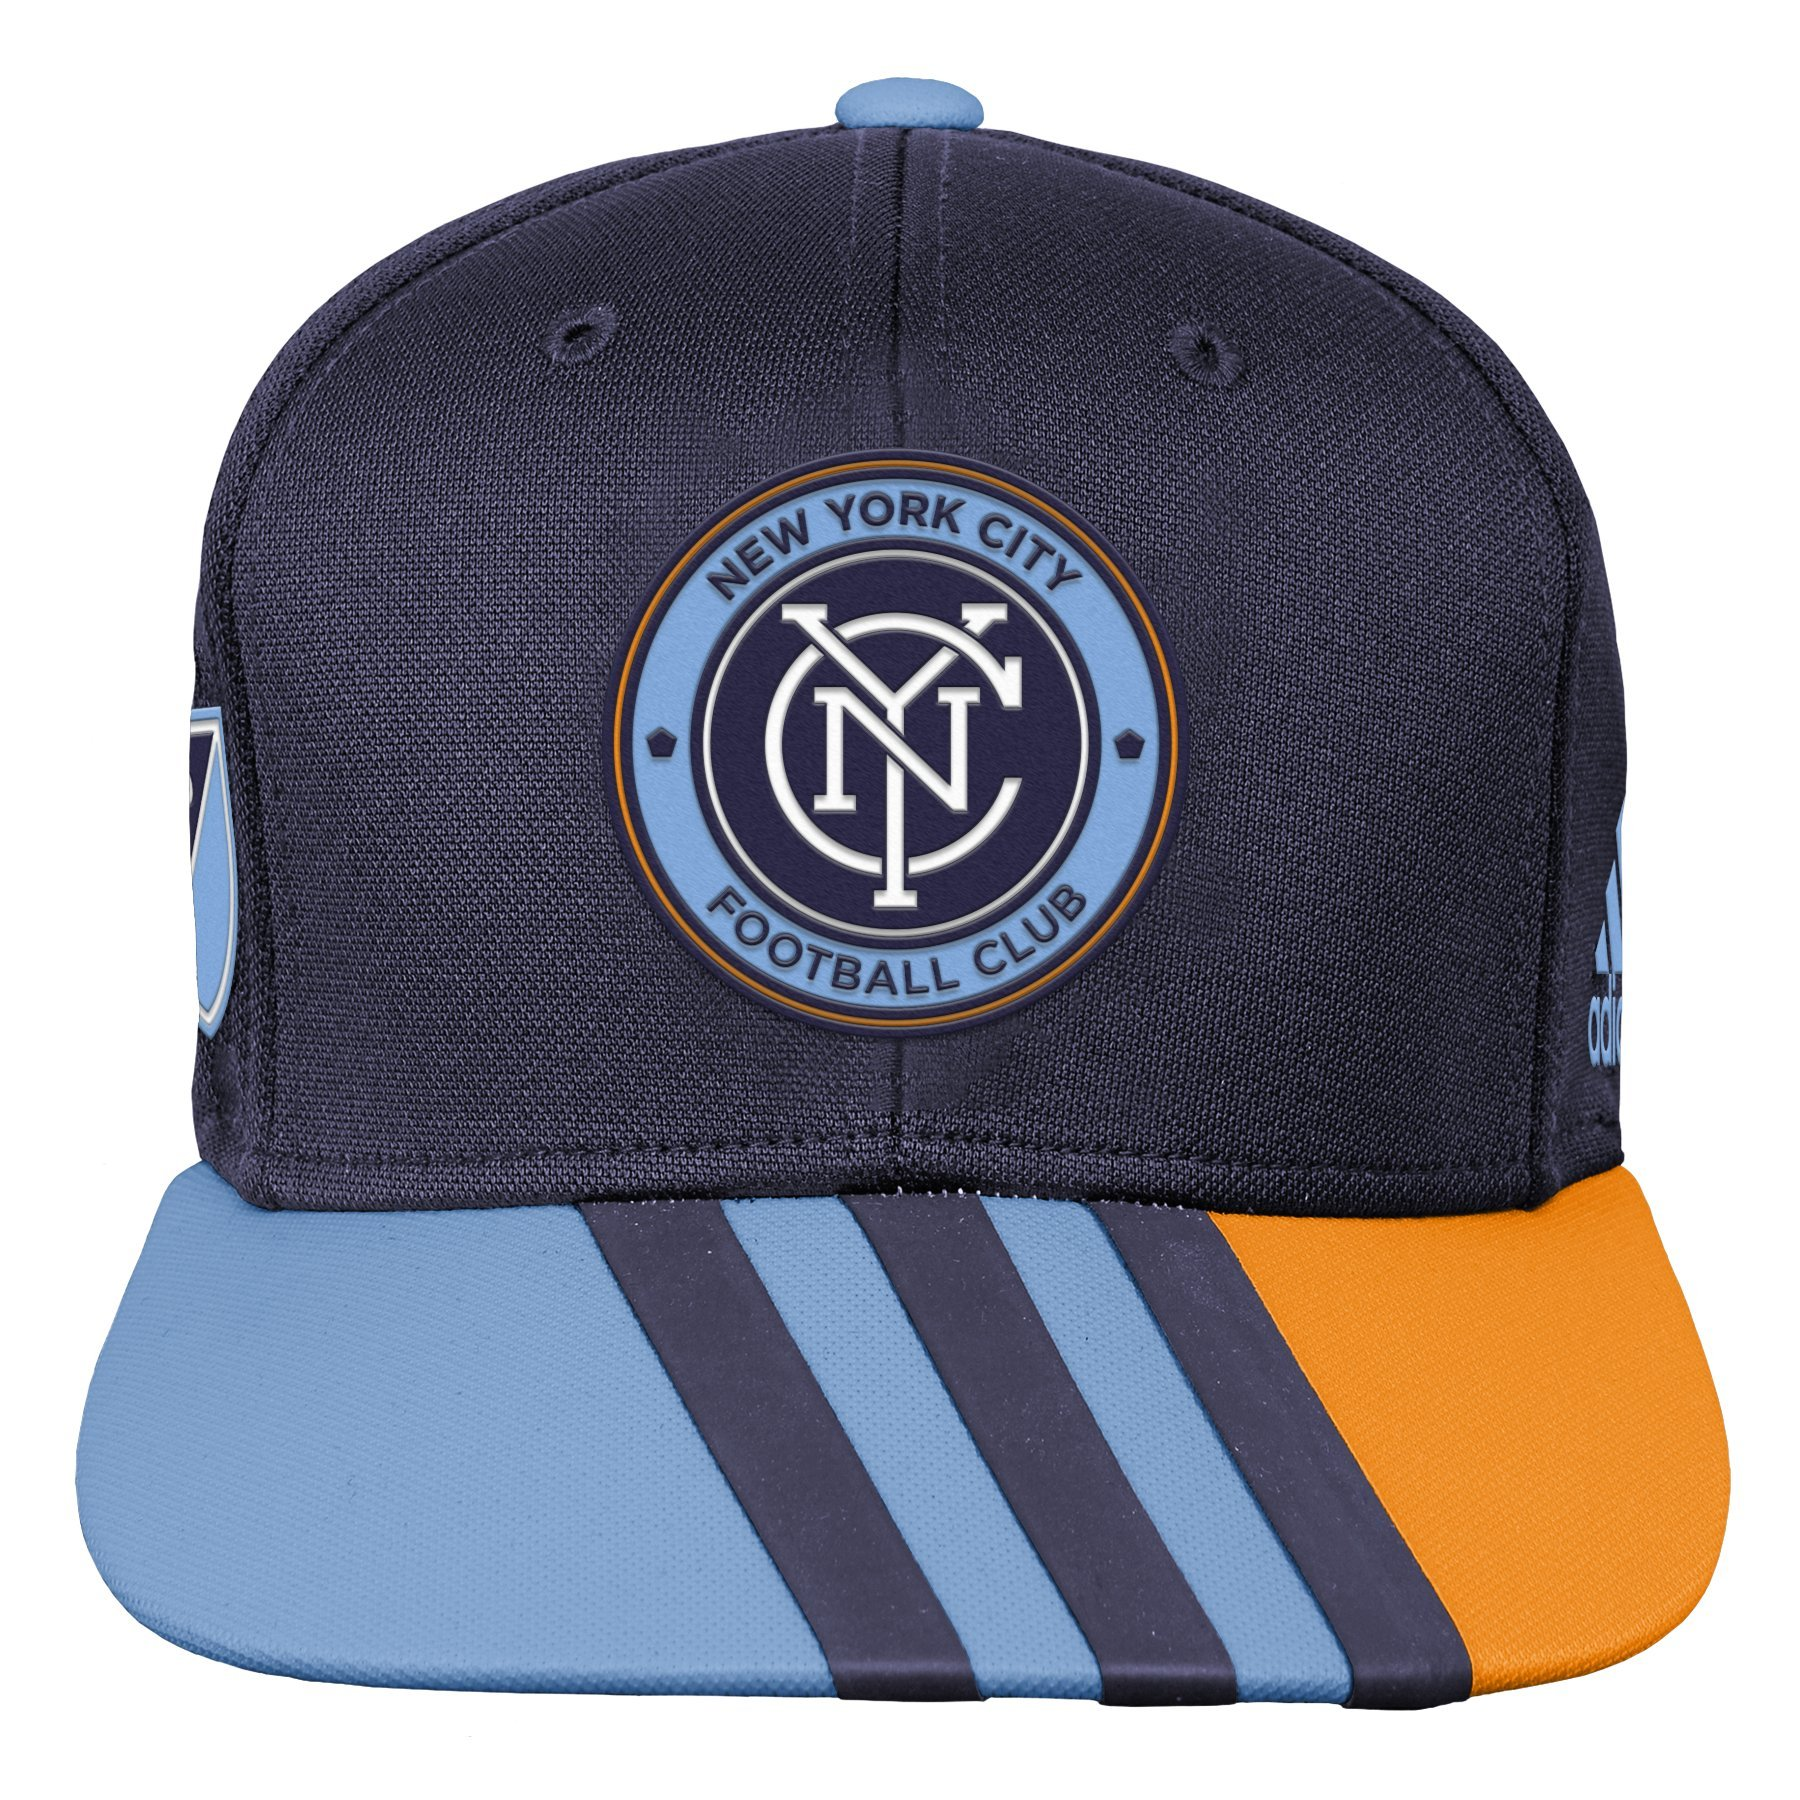 Outerstuff MLS NYCFC R S8FMK Youth Boys Flatbrim Snapback, One Size (8), Bahia Blue